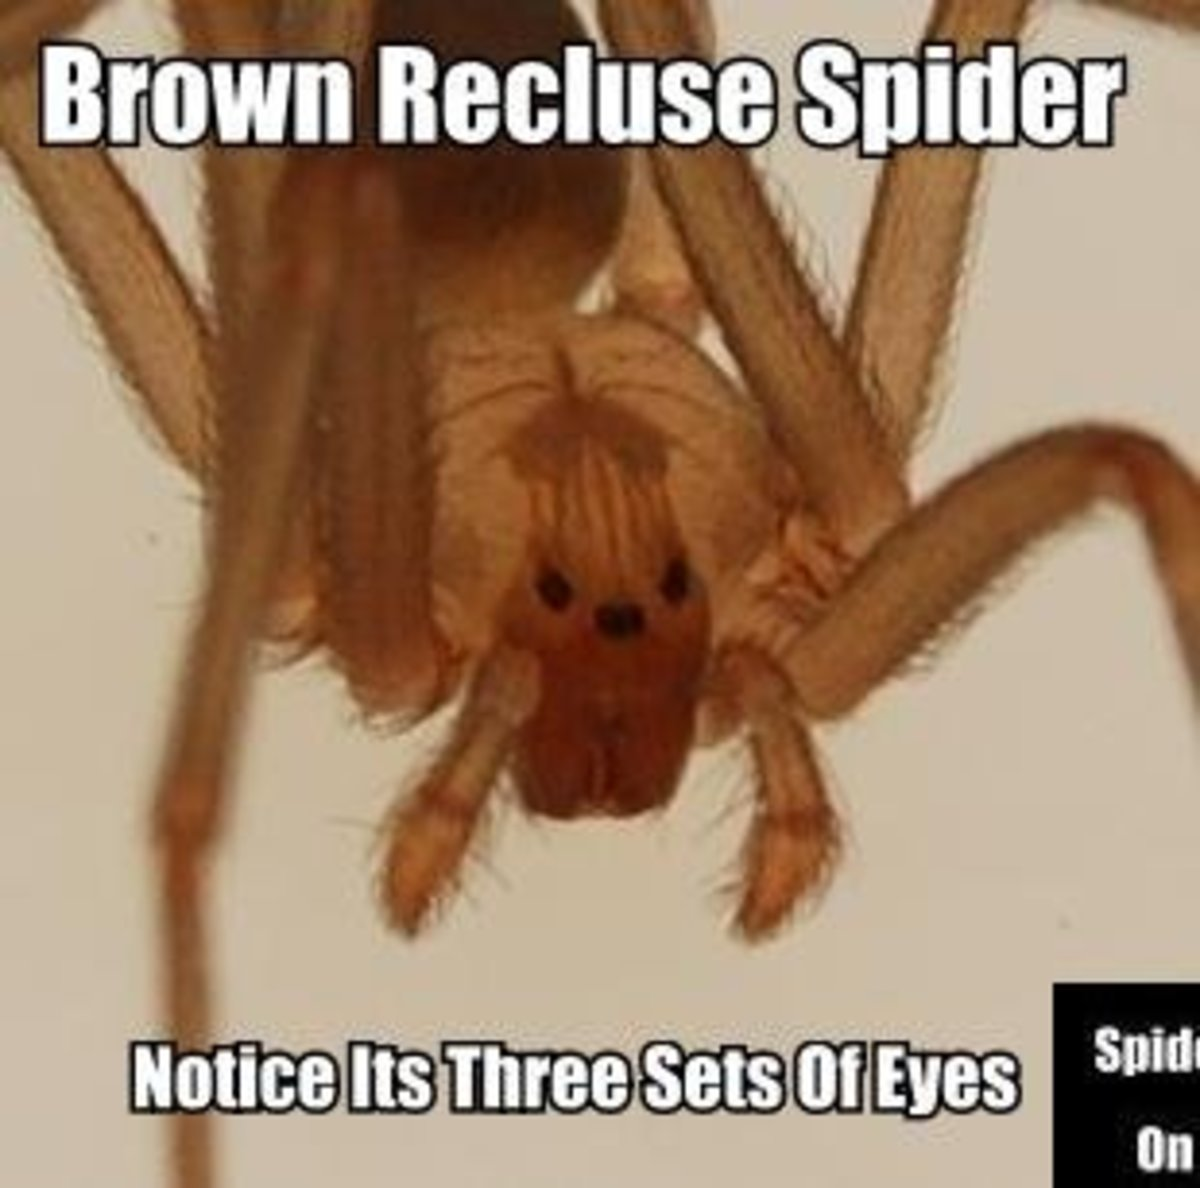 In this photo notice the three distinct sets of eyes of a Brown Recluse Spider.